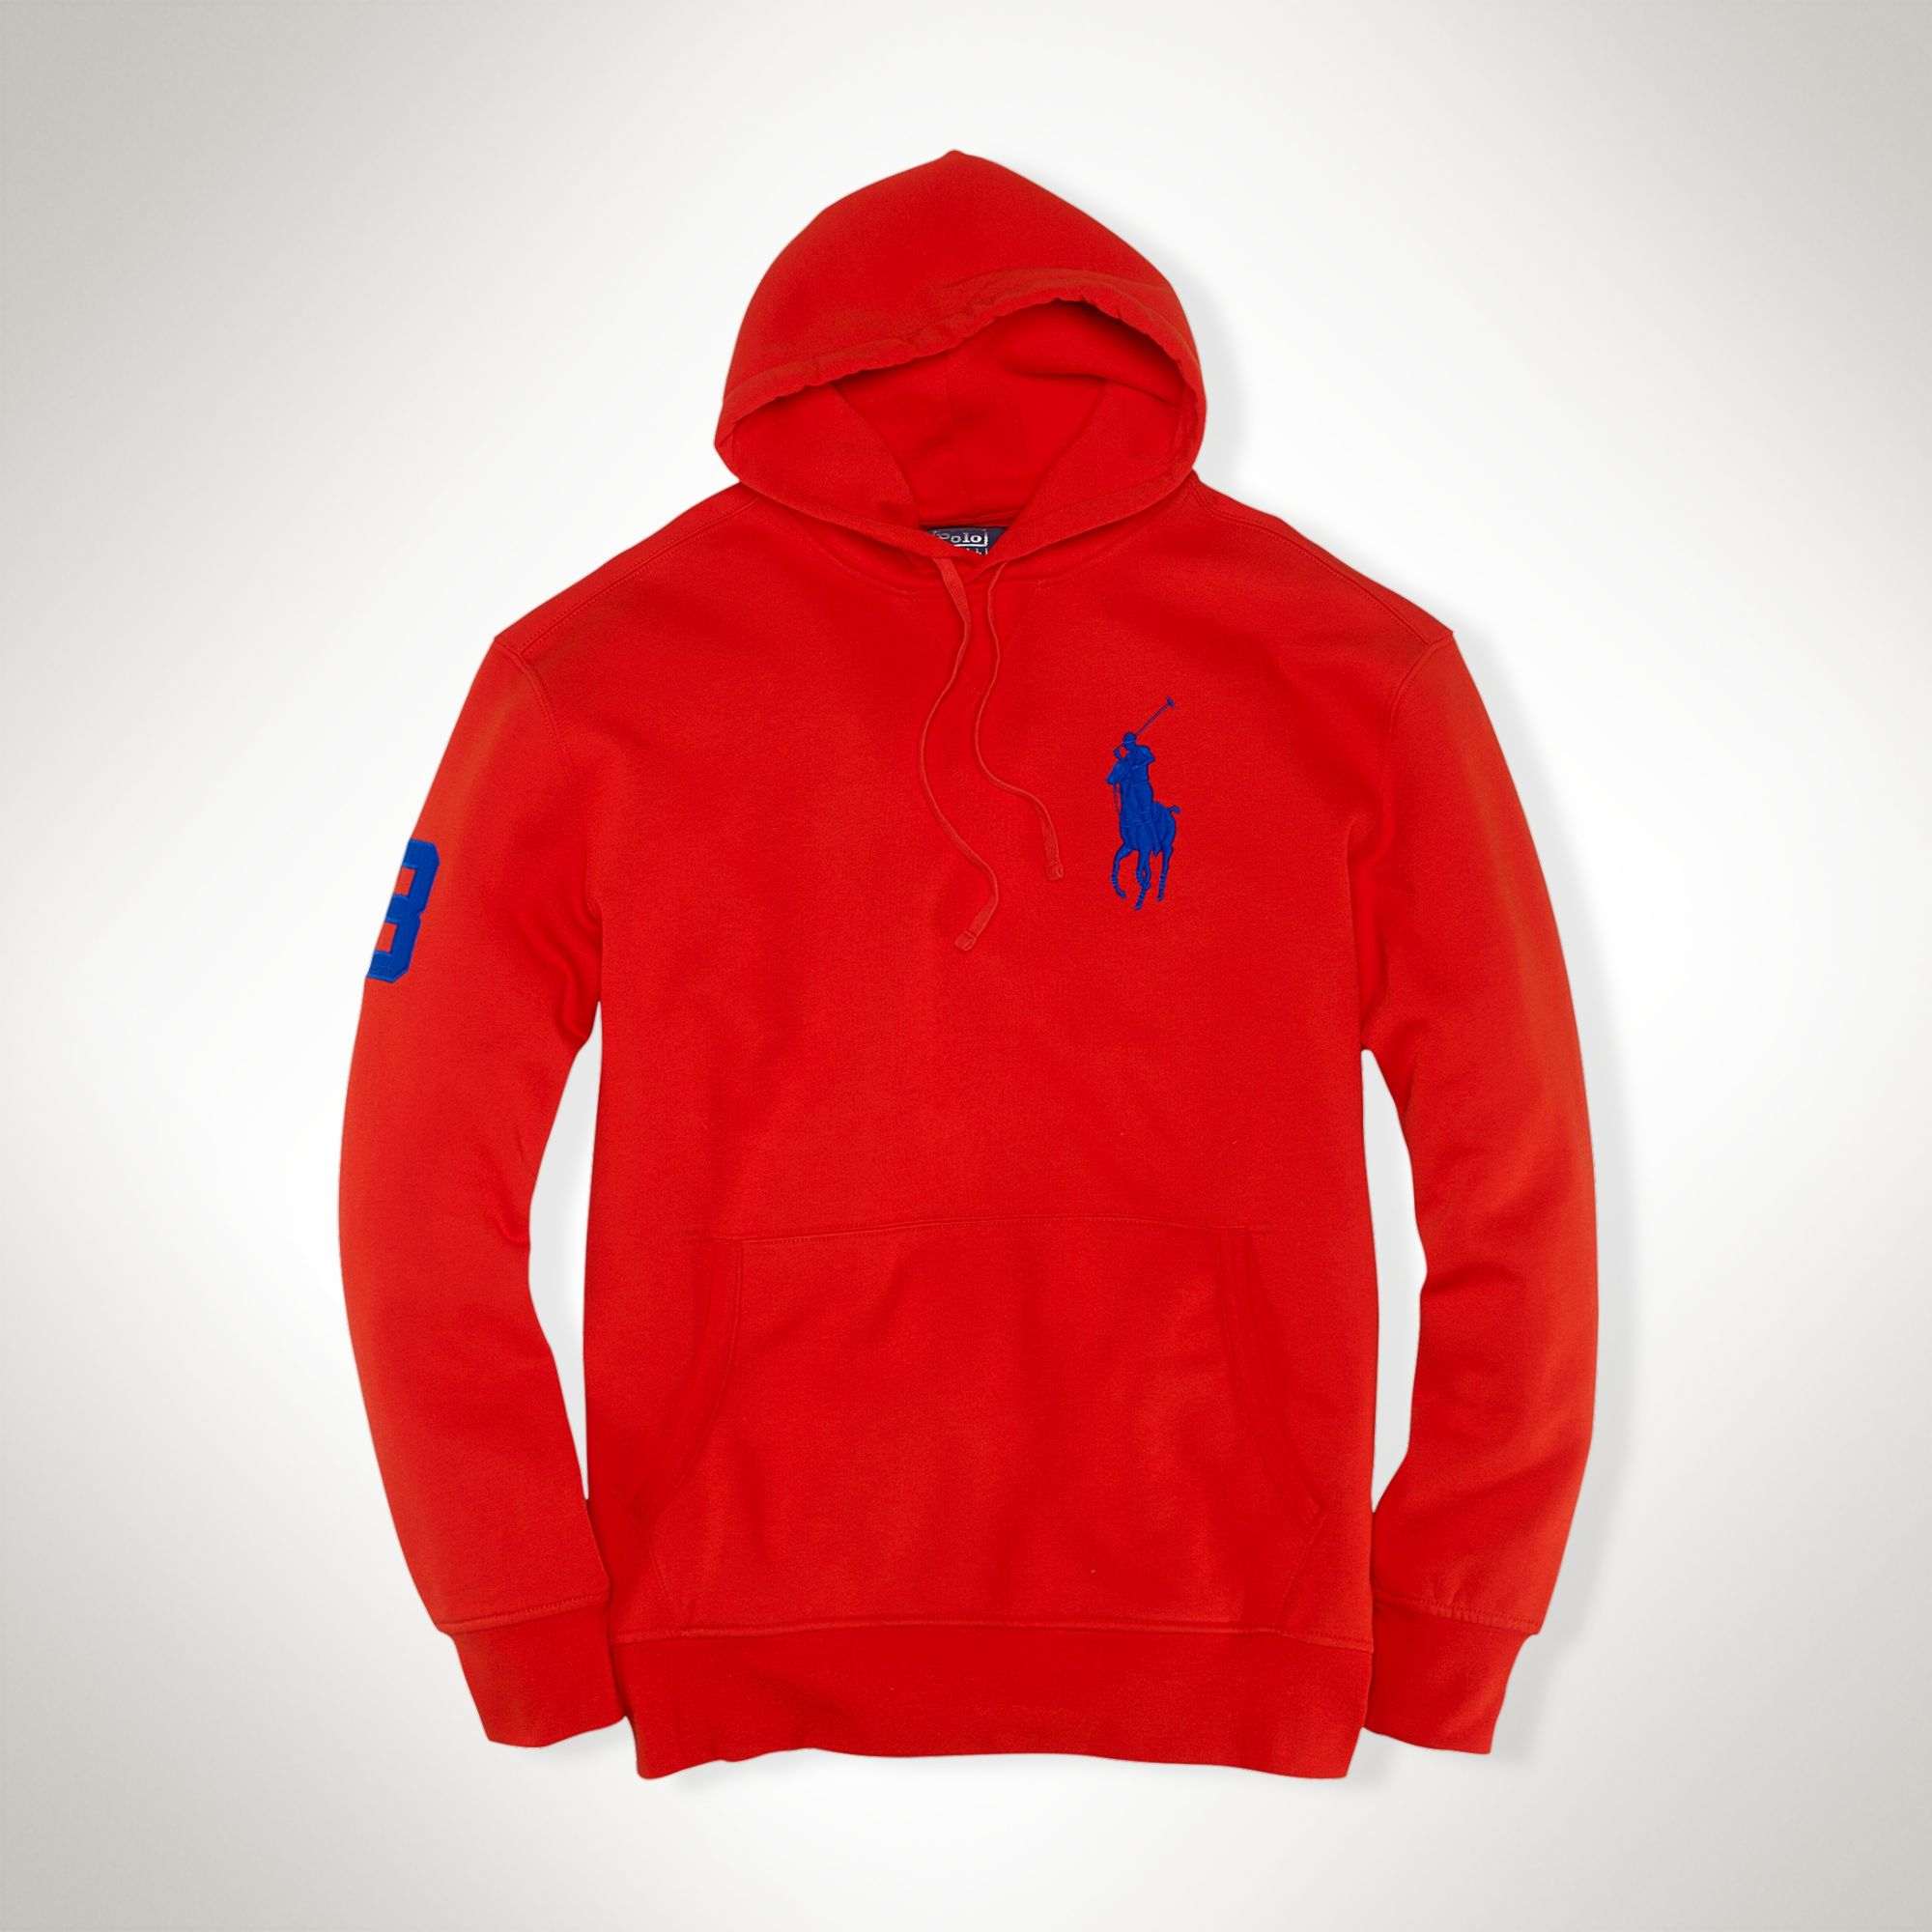 polo ralph lauren playa fleece hoodie in red for men lyst. Black Bedroom Furniture Sets. Home Design Ideas